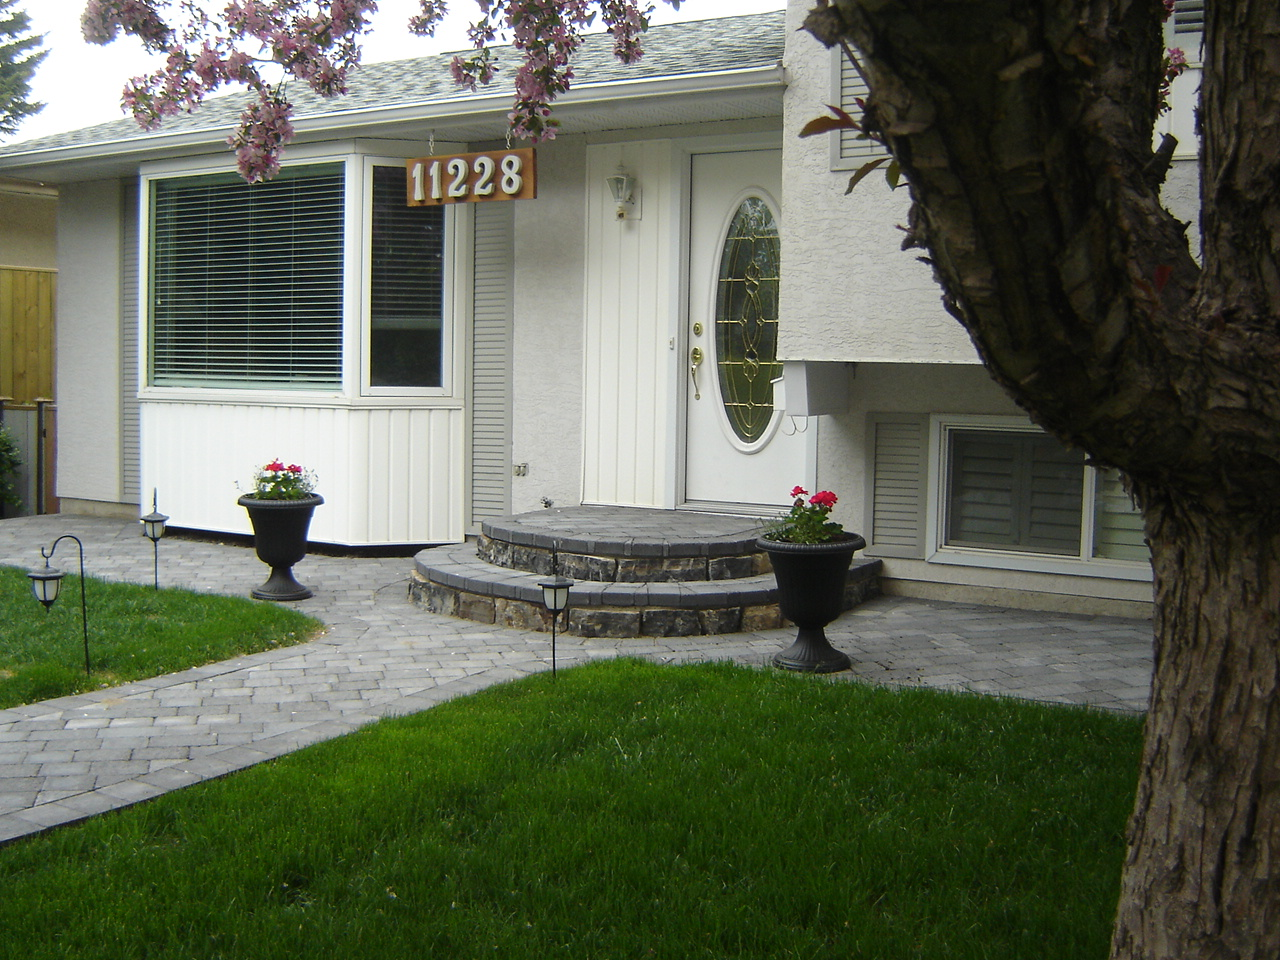 Paving stone walkway and stairs